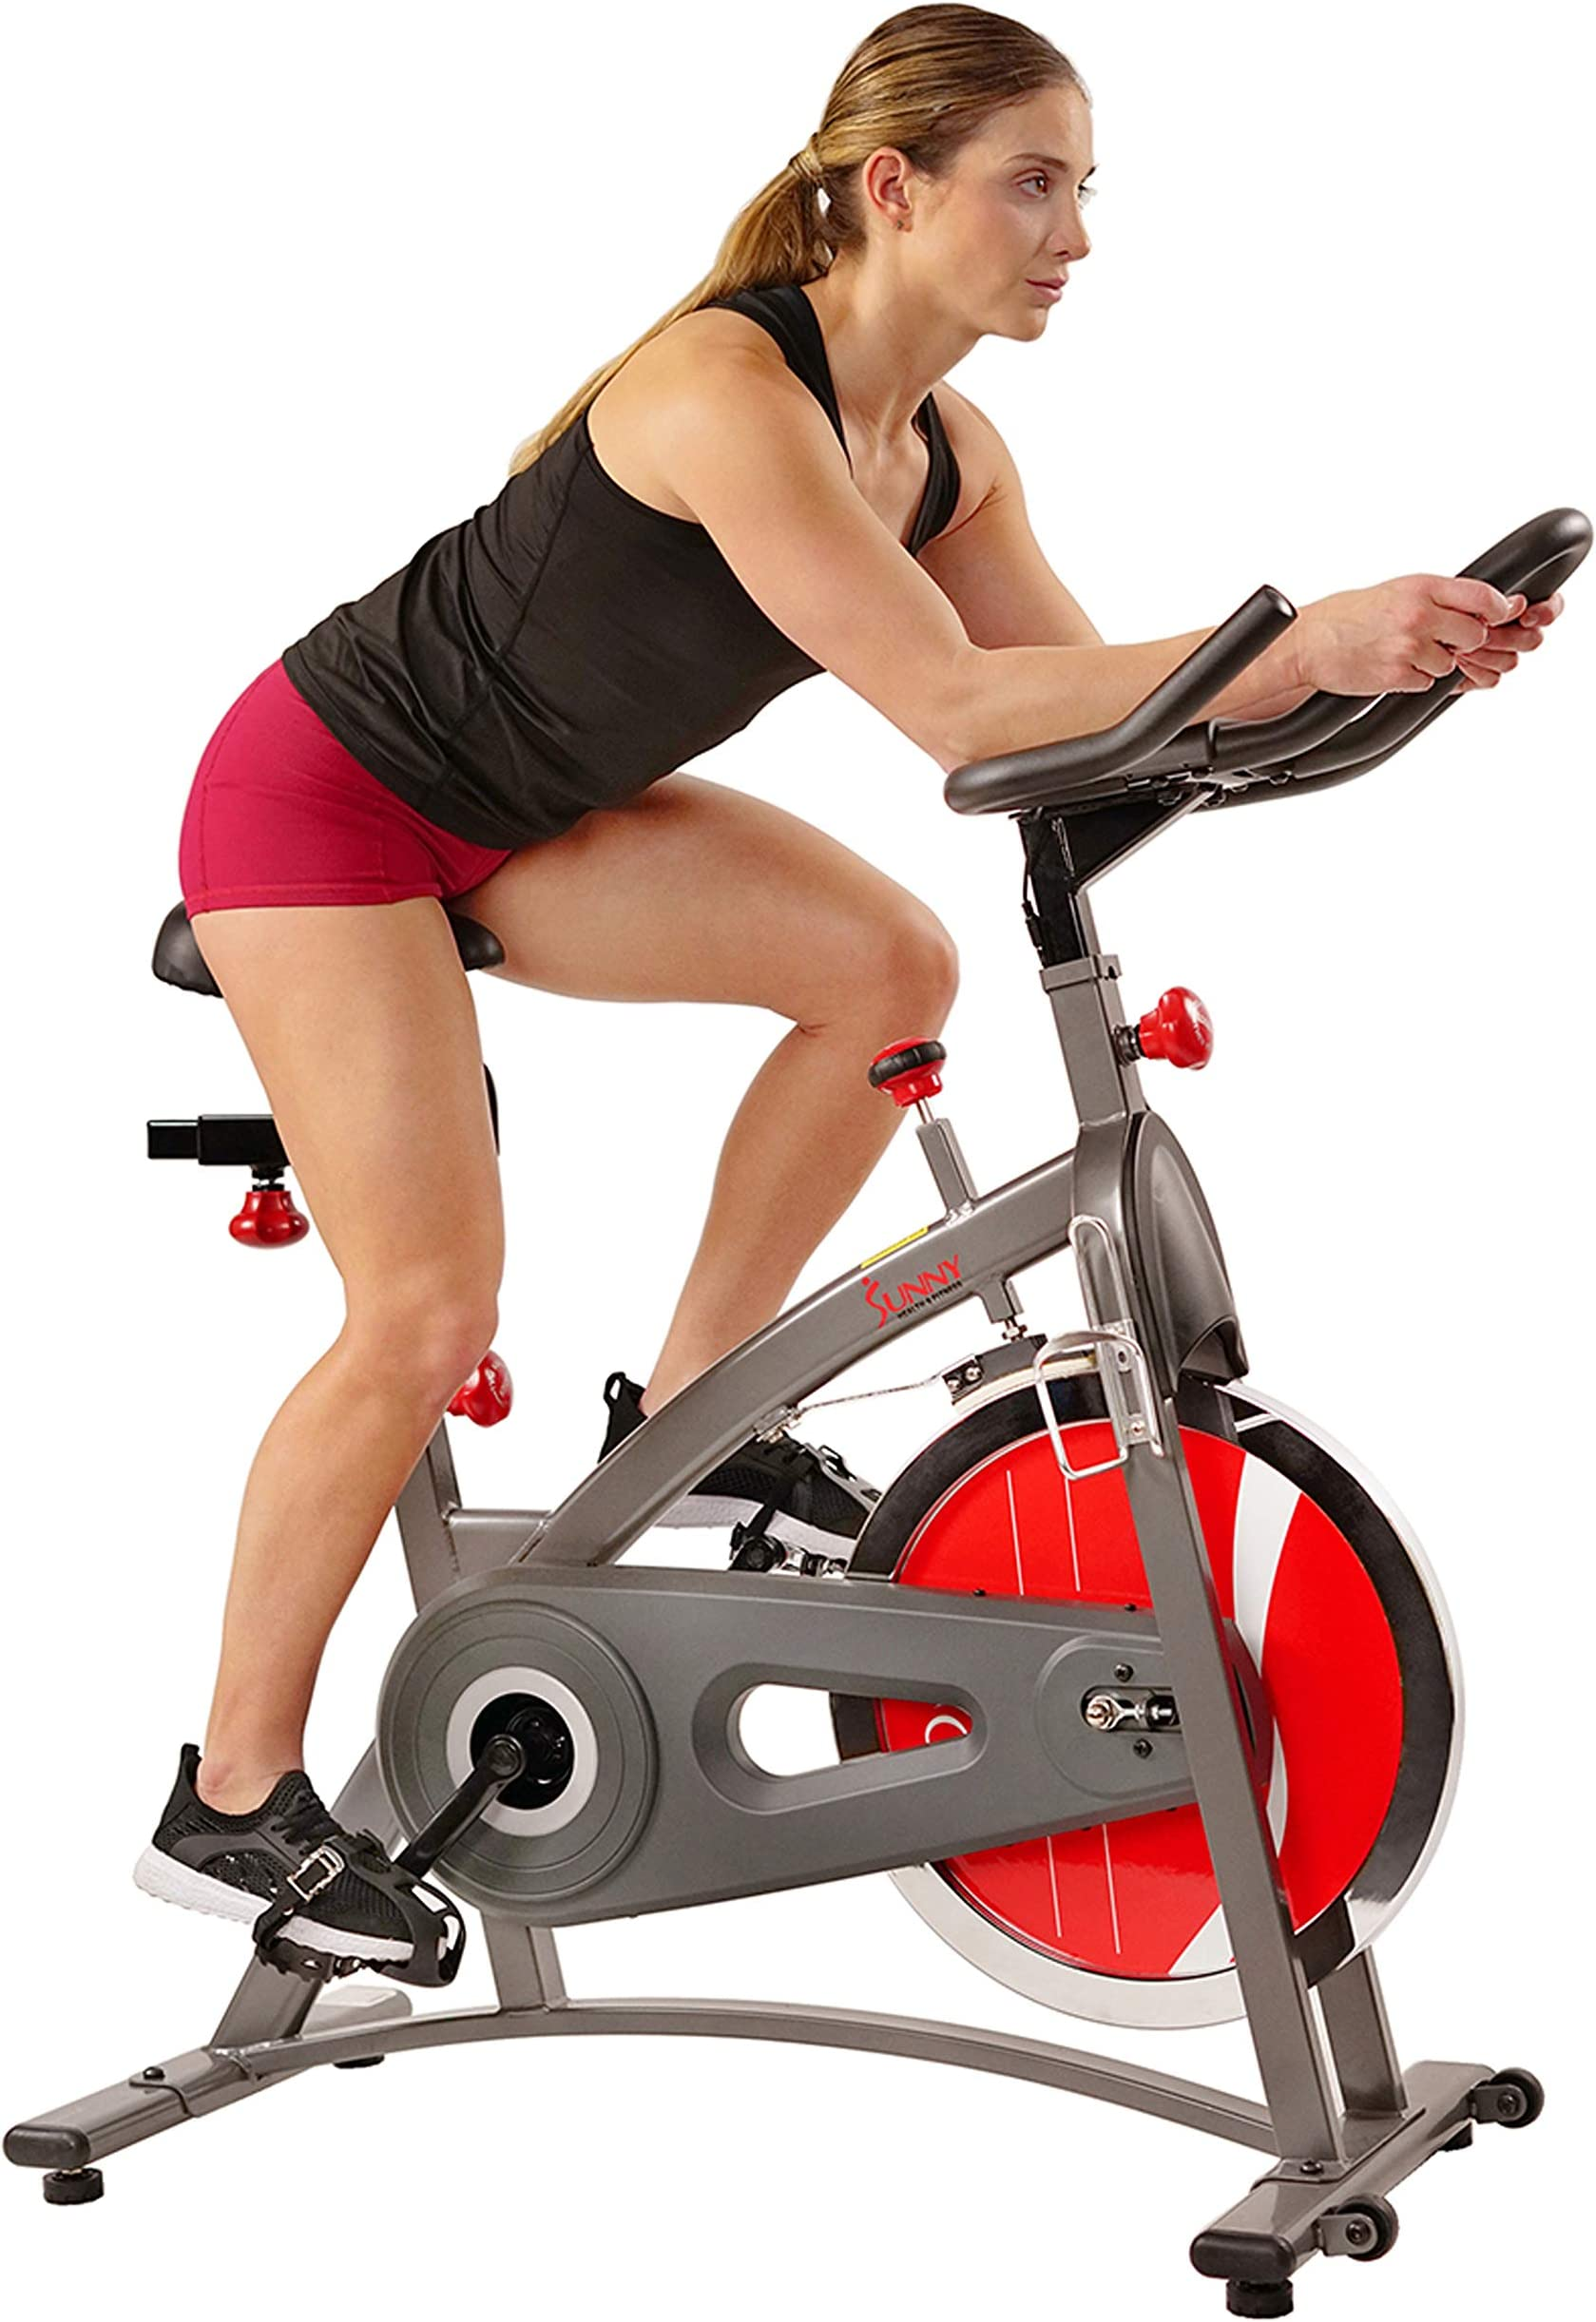 Sunny Health & Fitness Indoor Cycling Exercise Bike with LCD Monitor, 40 lb chrome Flywheel, 265 lb Max Weight - SF-B1423/C